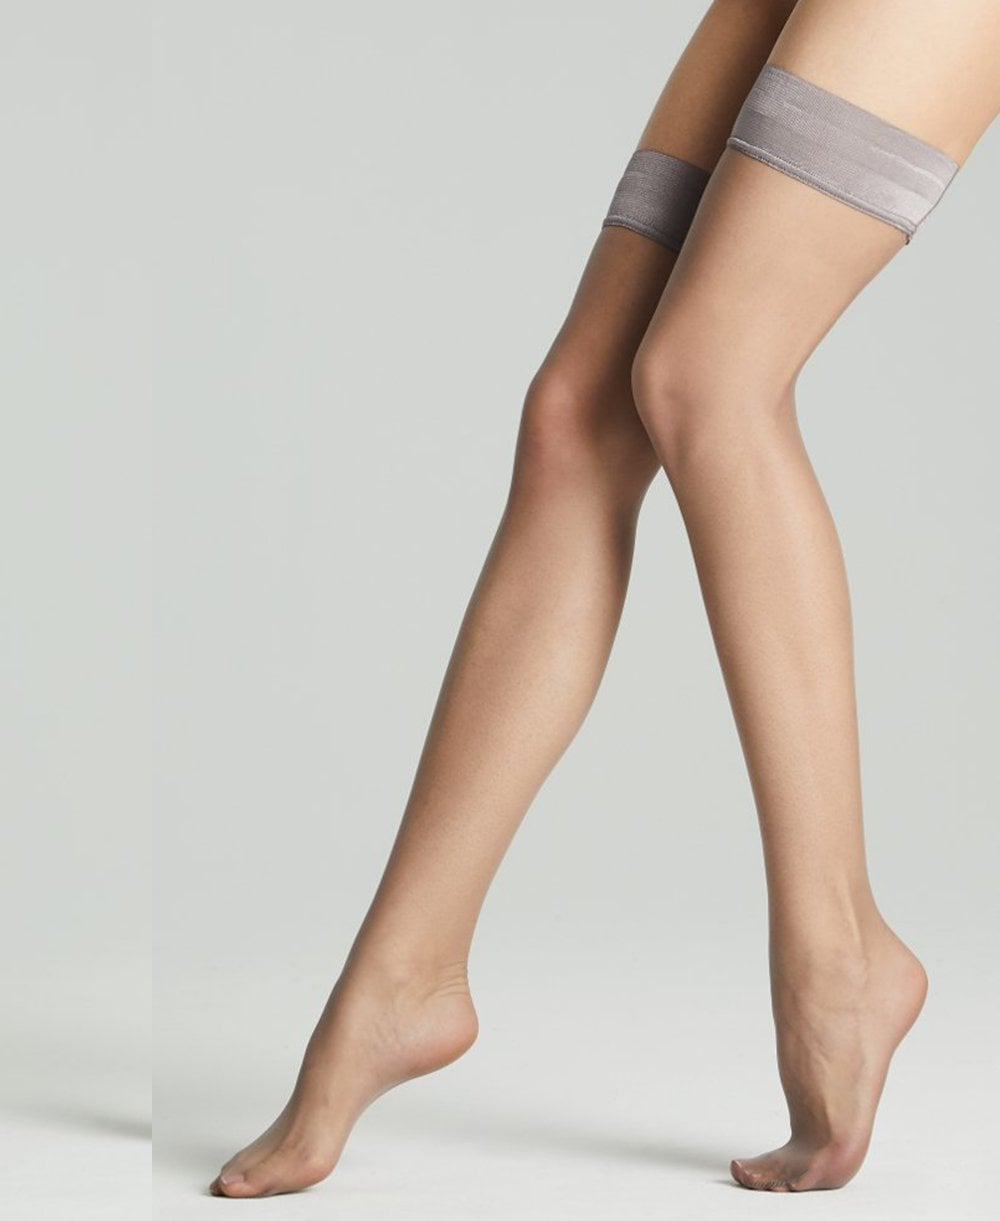 1cba8ec73 Fogal Catwalk 10 Denier Stay-Ups - Hold-Ups from luxury-legs.com UK